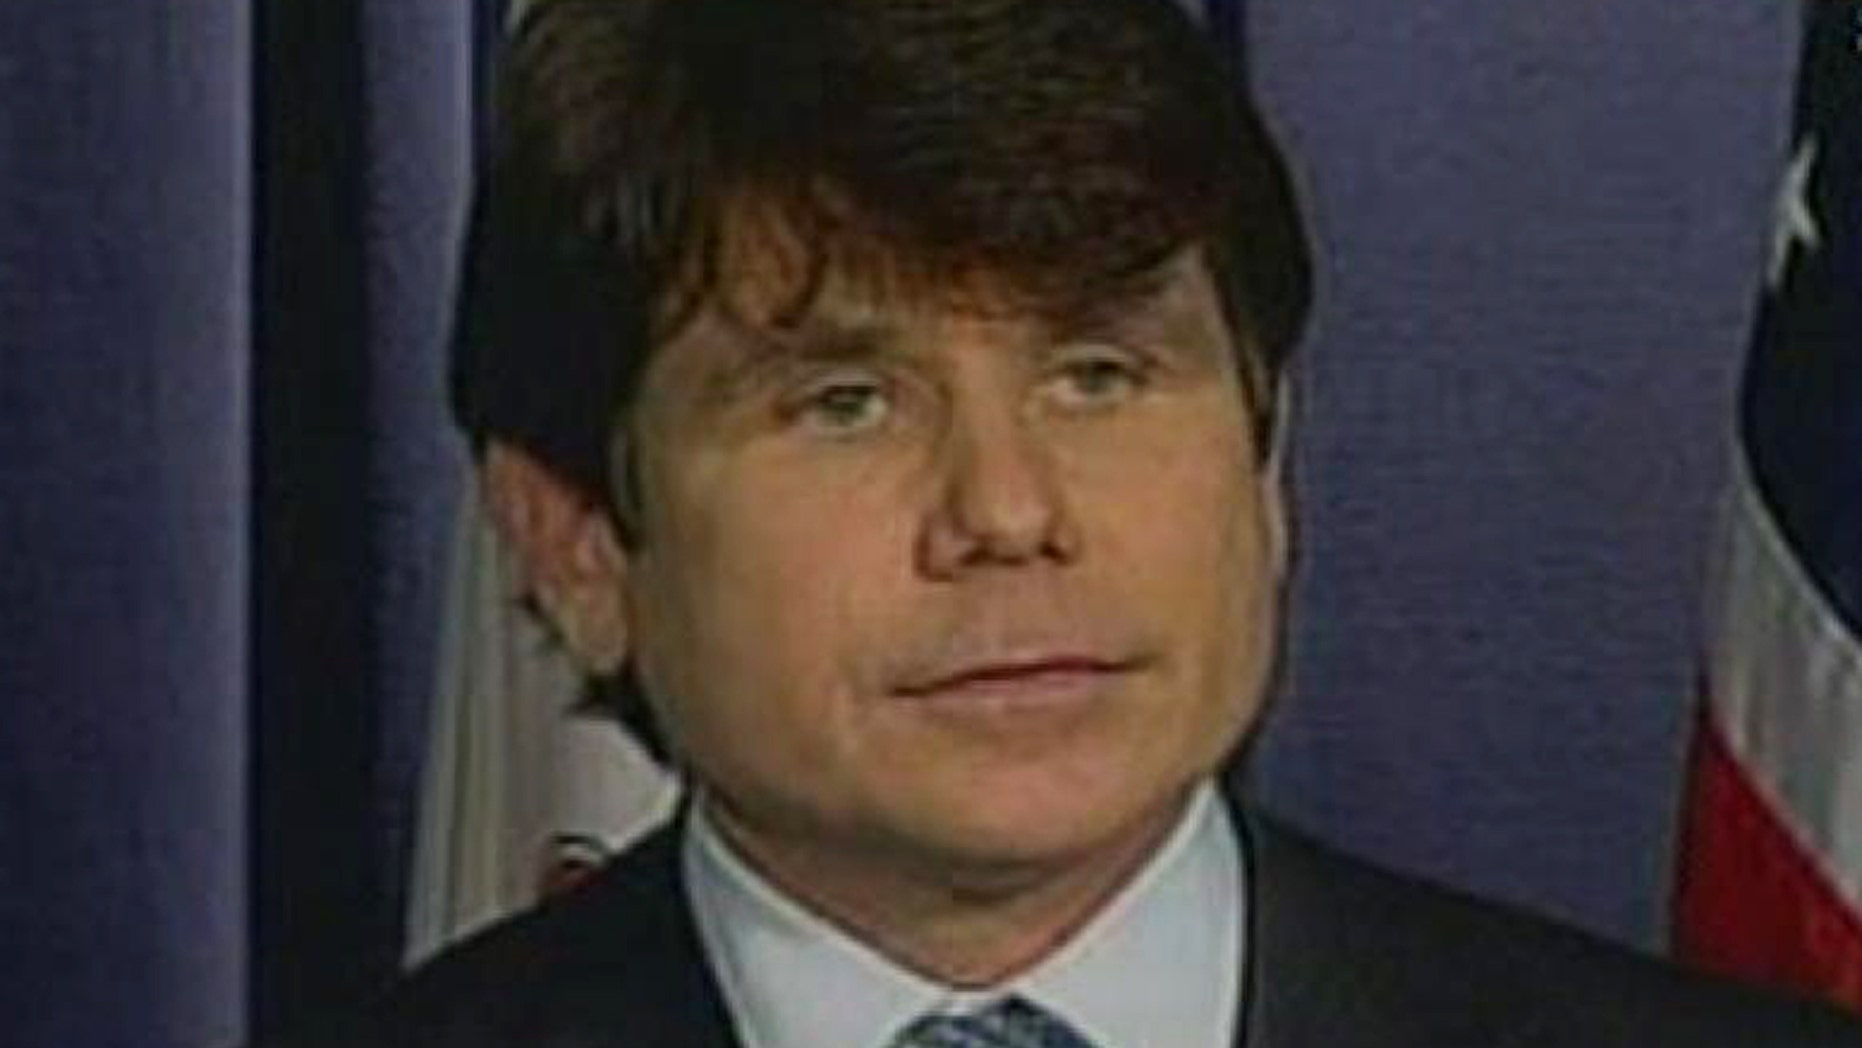 Westlake Legal Group Rod-Blagojevich-thumb Trump 'seriously' considering commuting Blagojevich sentence Gerren Keith Gaynor fox-news/person/donald-trump fox news fnc/politics fnc b13c04a9-df77-5107-a7d9-07be8a24f631 article